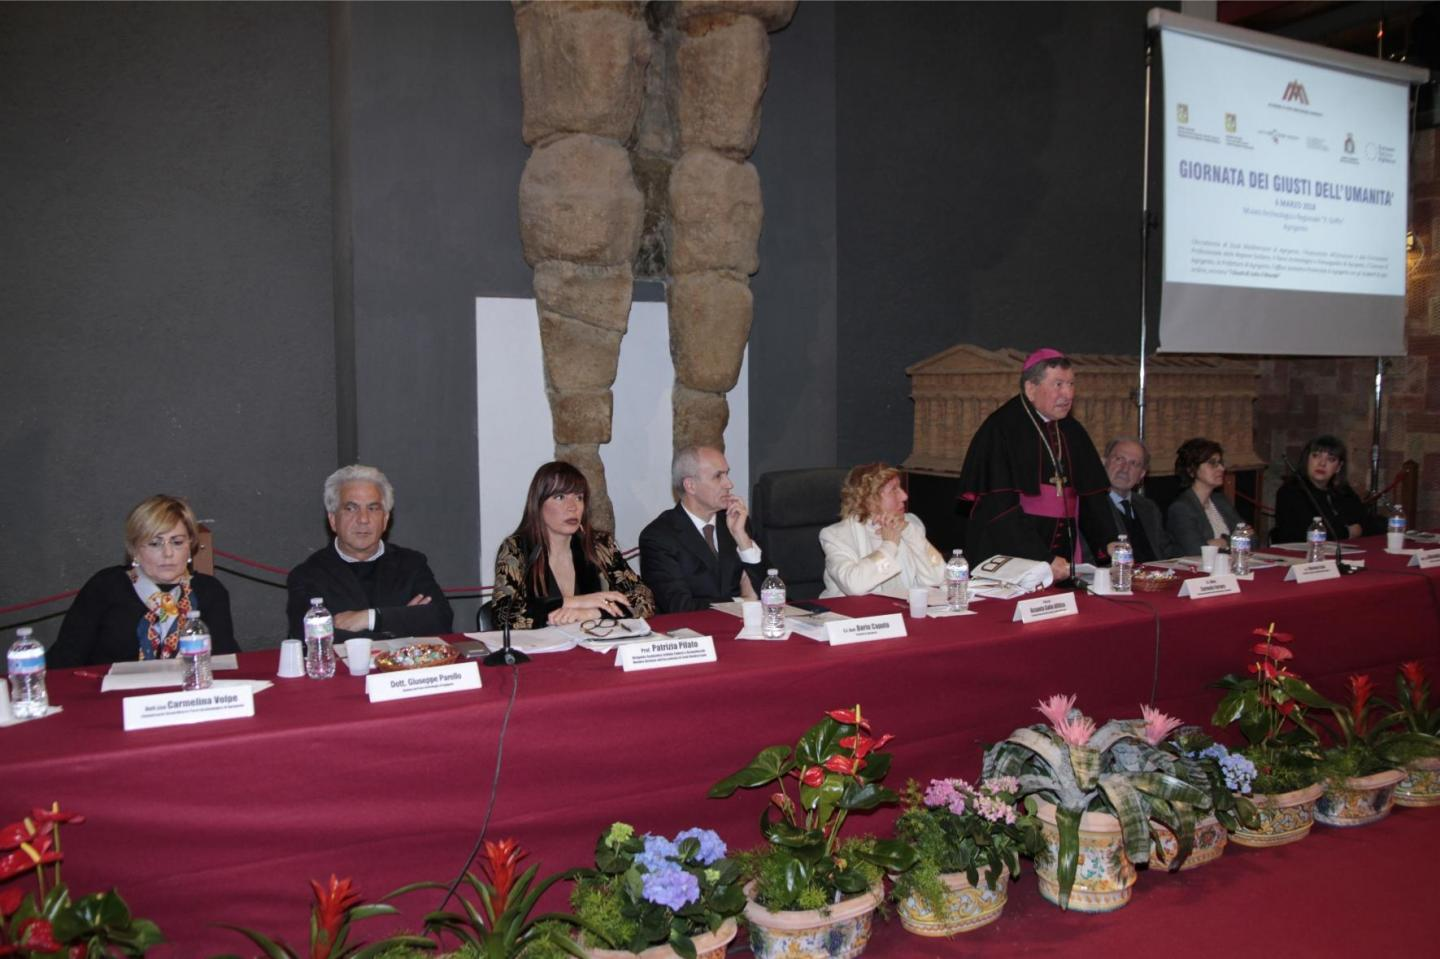 conference for the Righteous in Agrigento